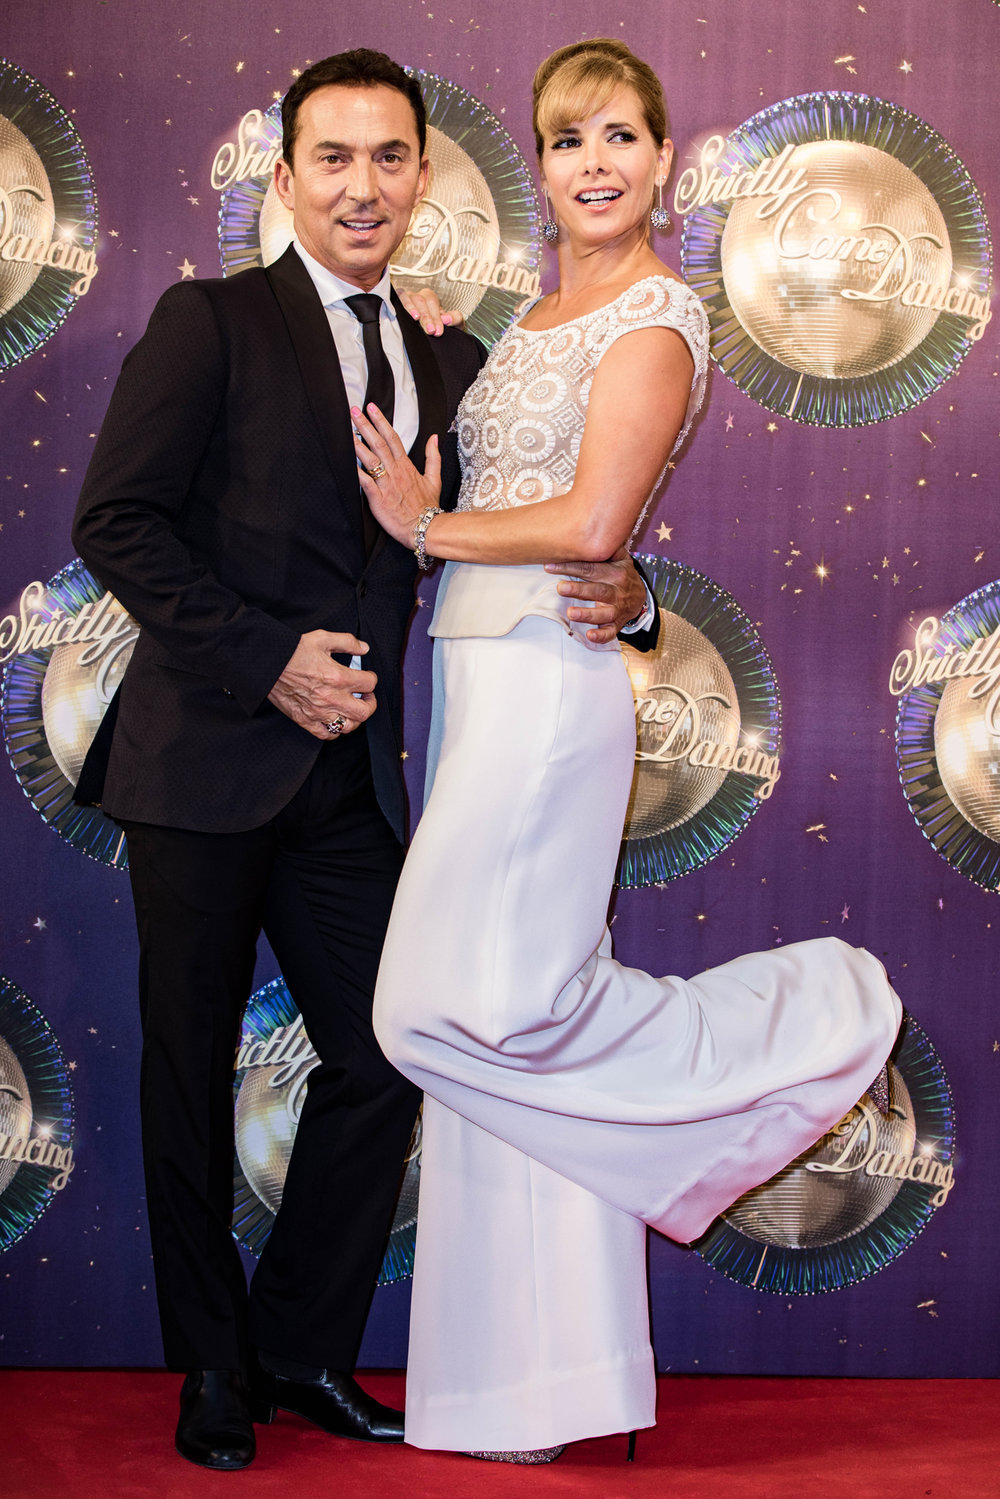 PHT_B5327_strictly_come_dancing_13964.JPG